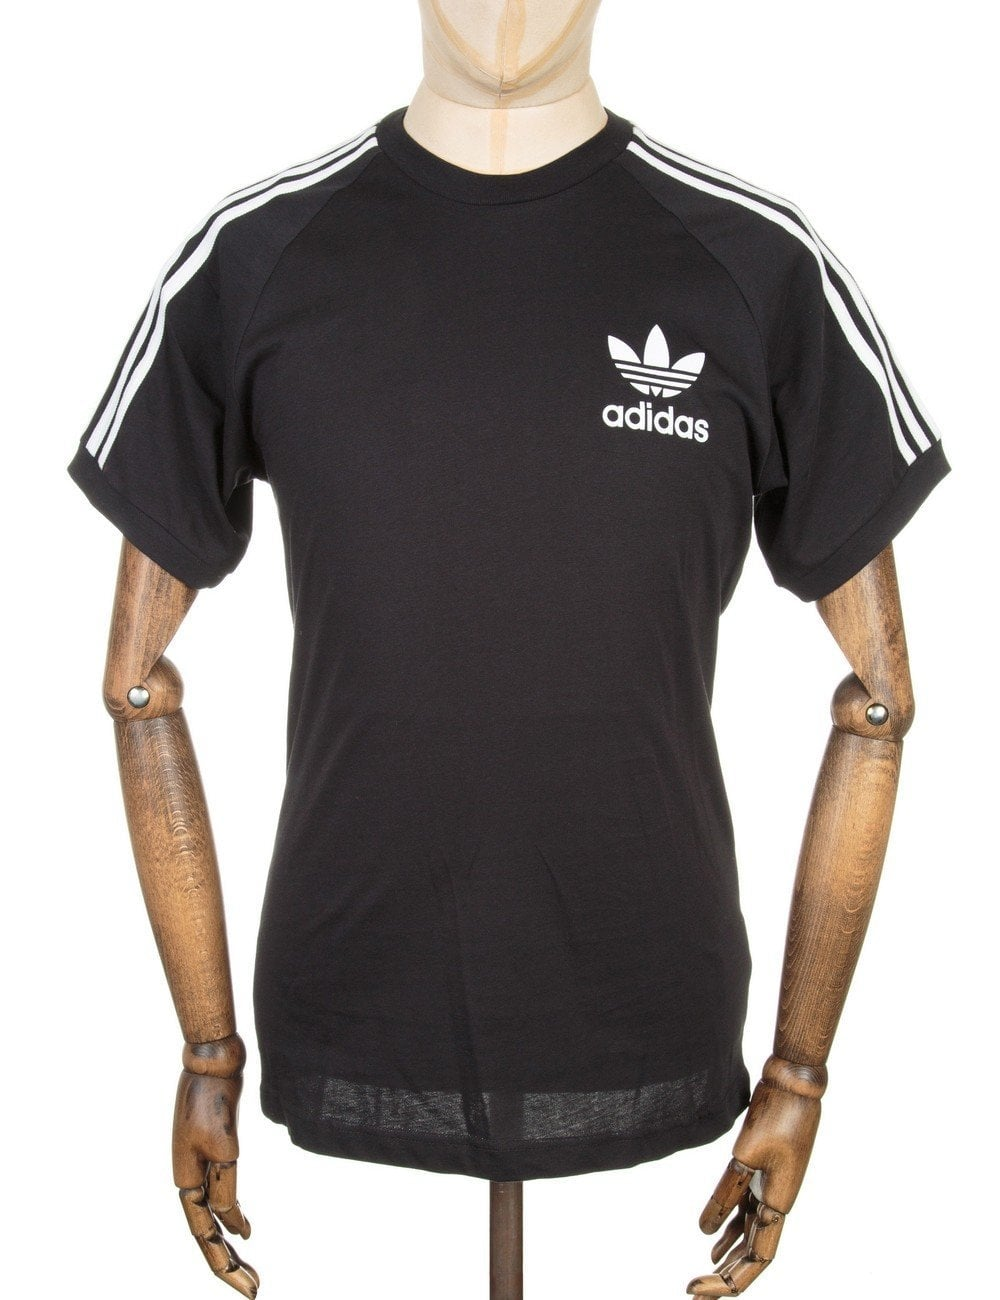 adidas california t shirt black